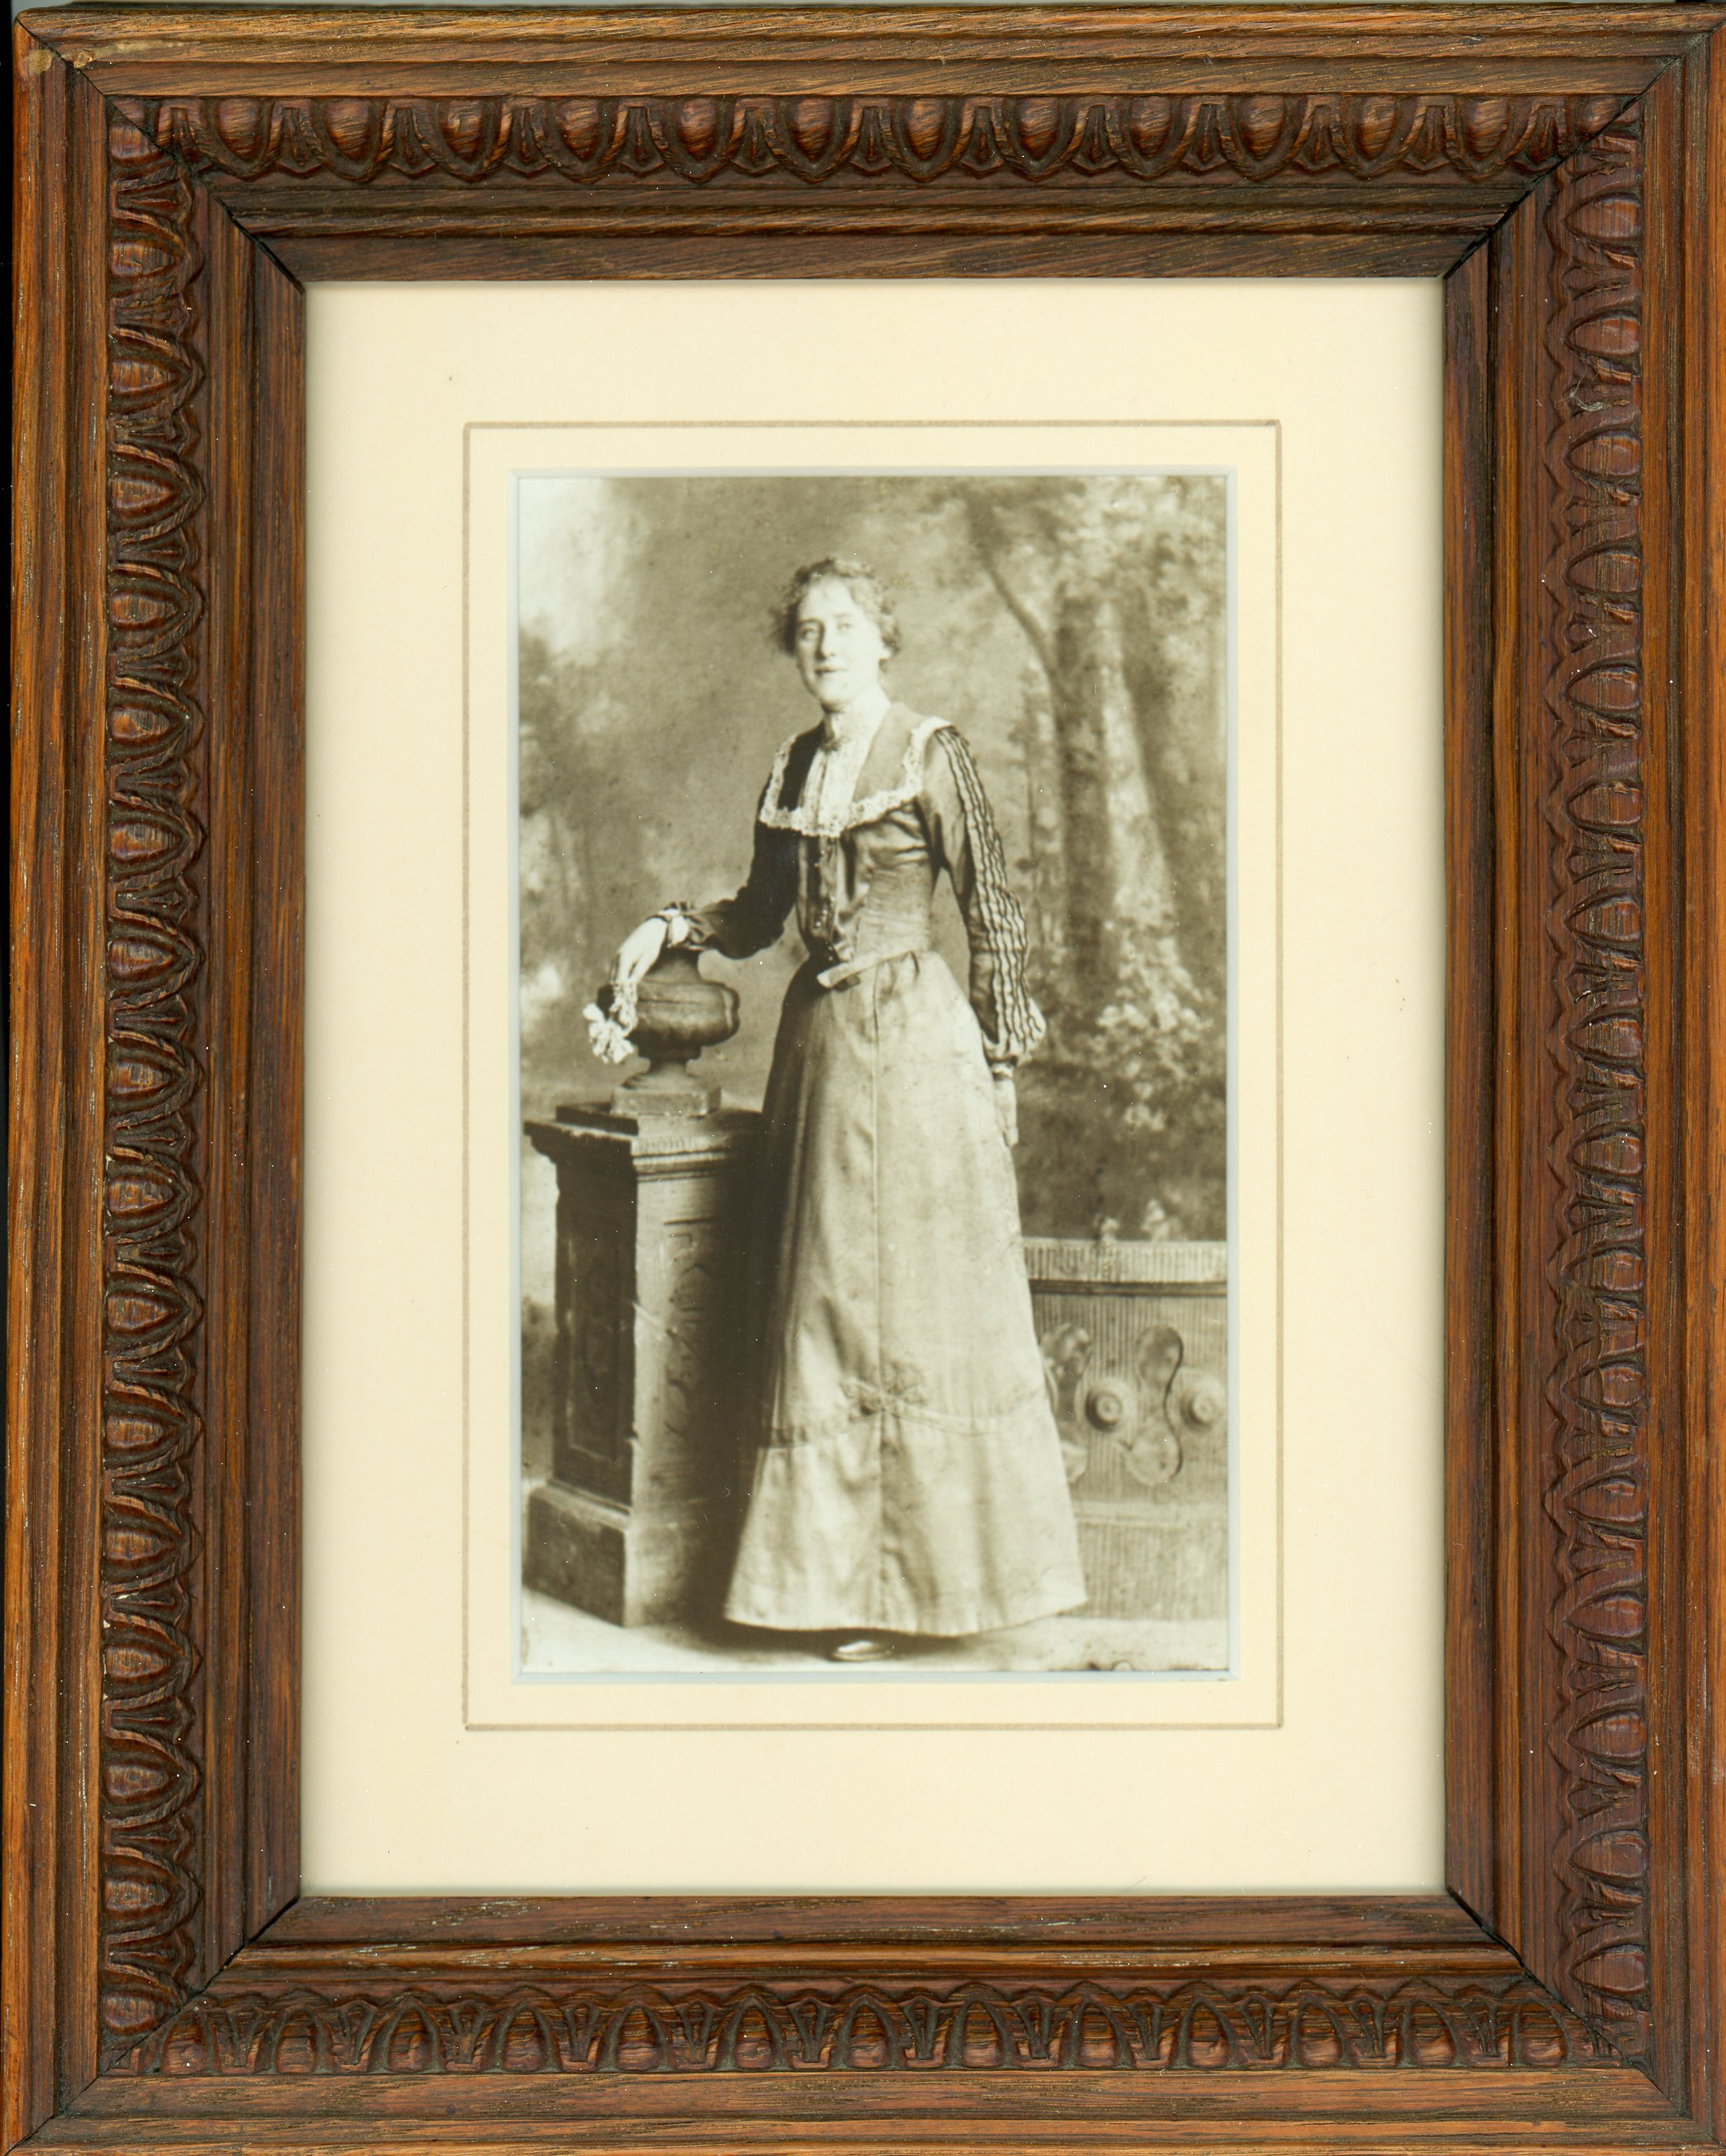 Framing photographs black and white revival framing jeuxipadfo Image collections